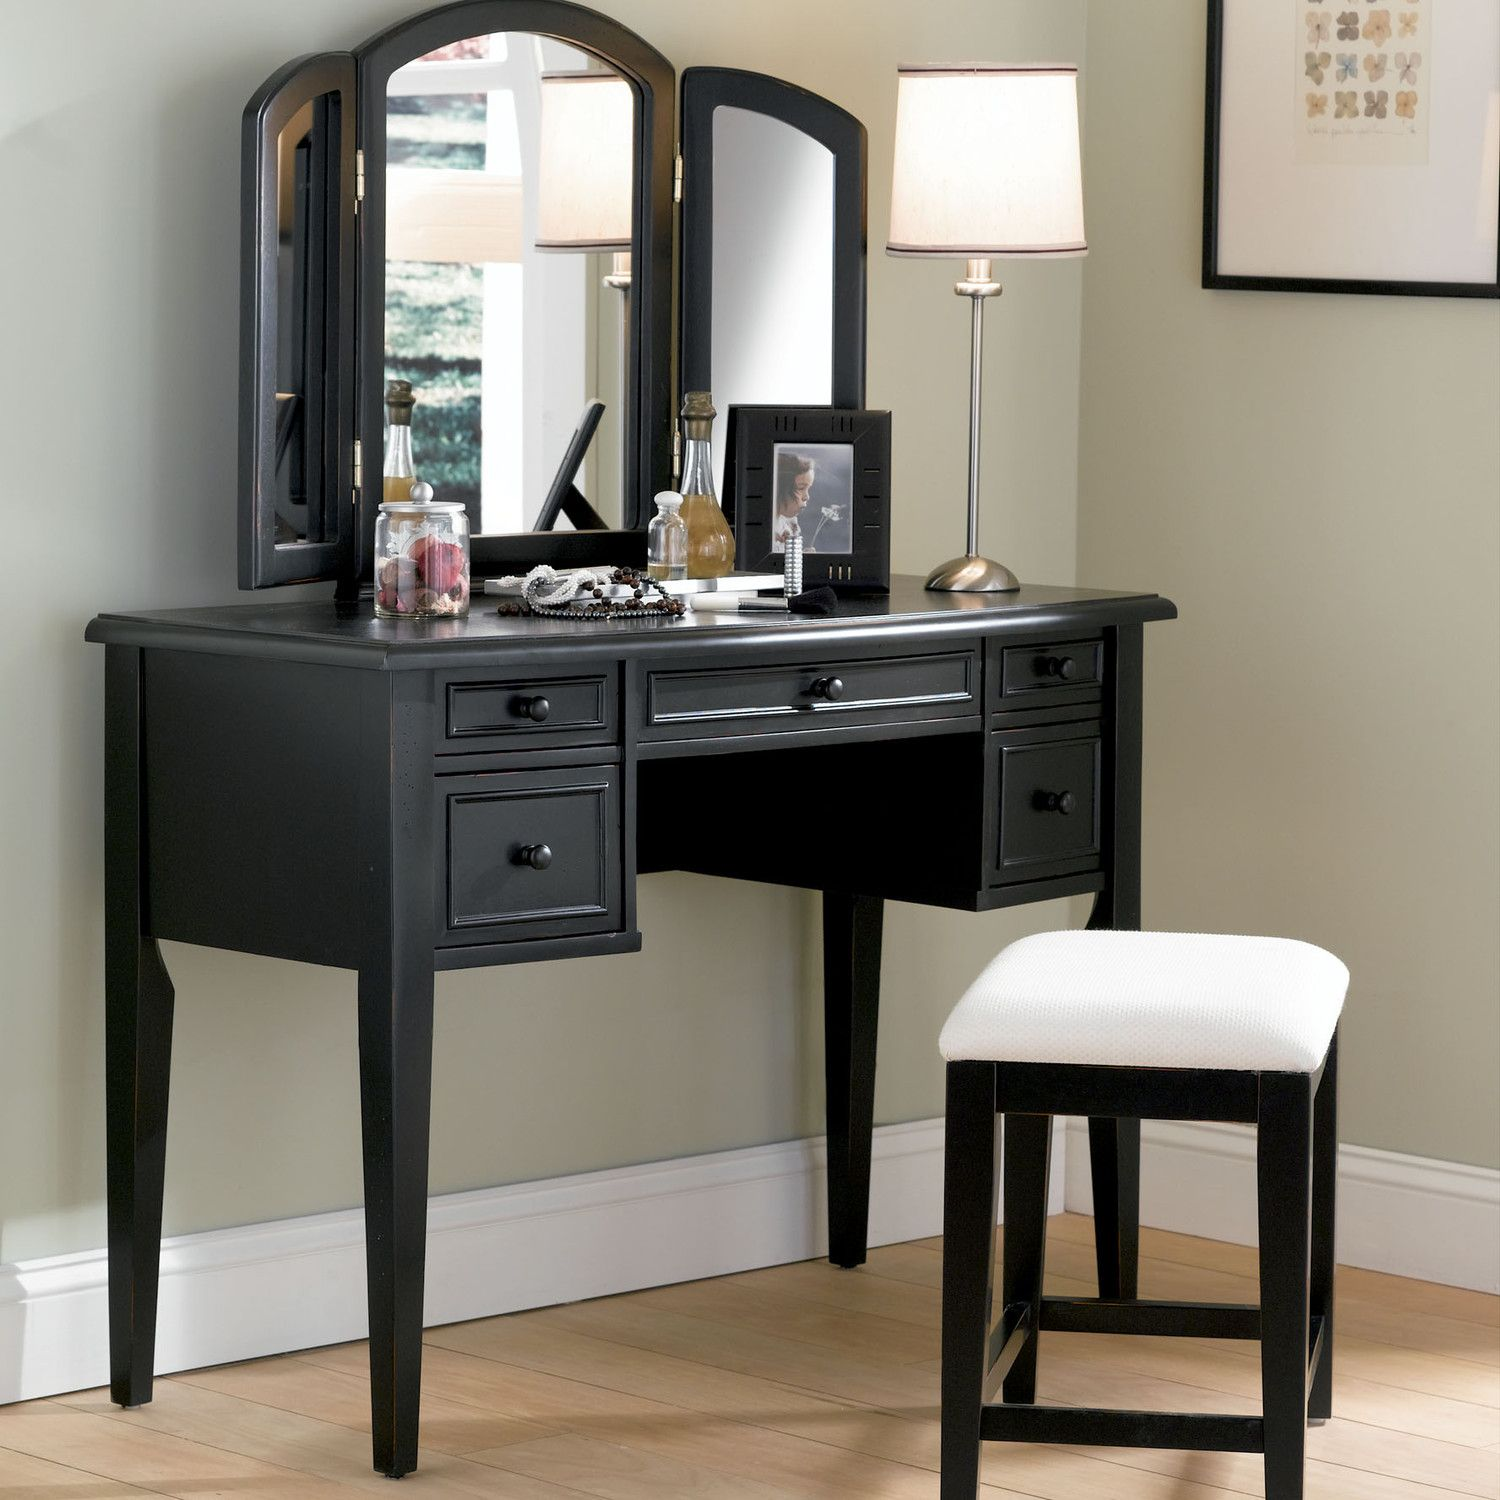 Antique Black Bedroom Furniture Amazing Powell Furniture Antique Black Vanity Set With Mirror  Bedroom 2018